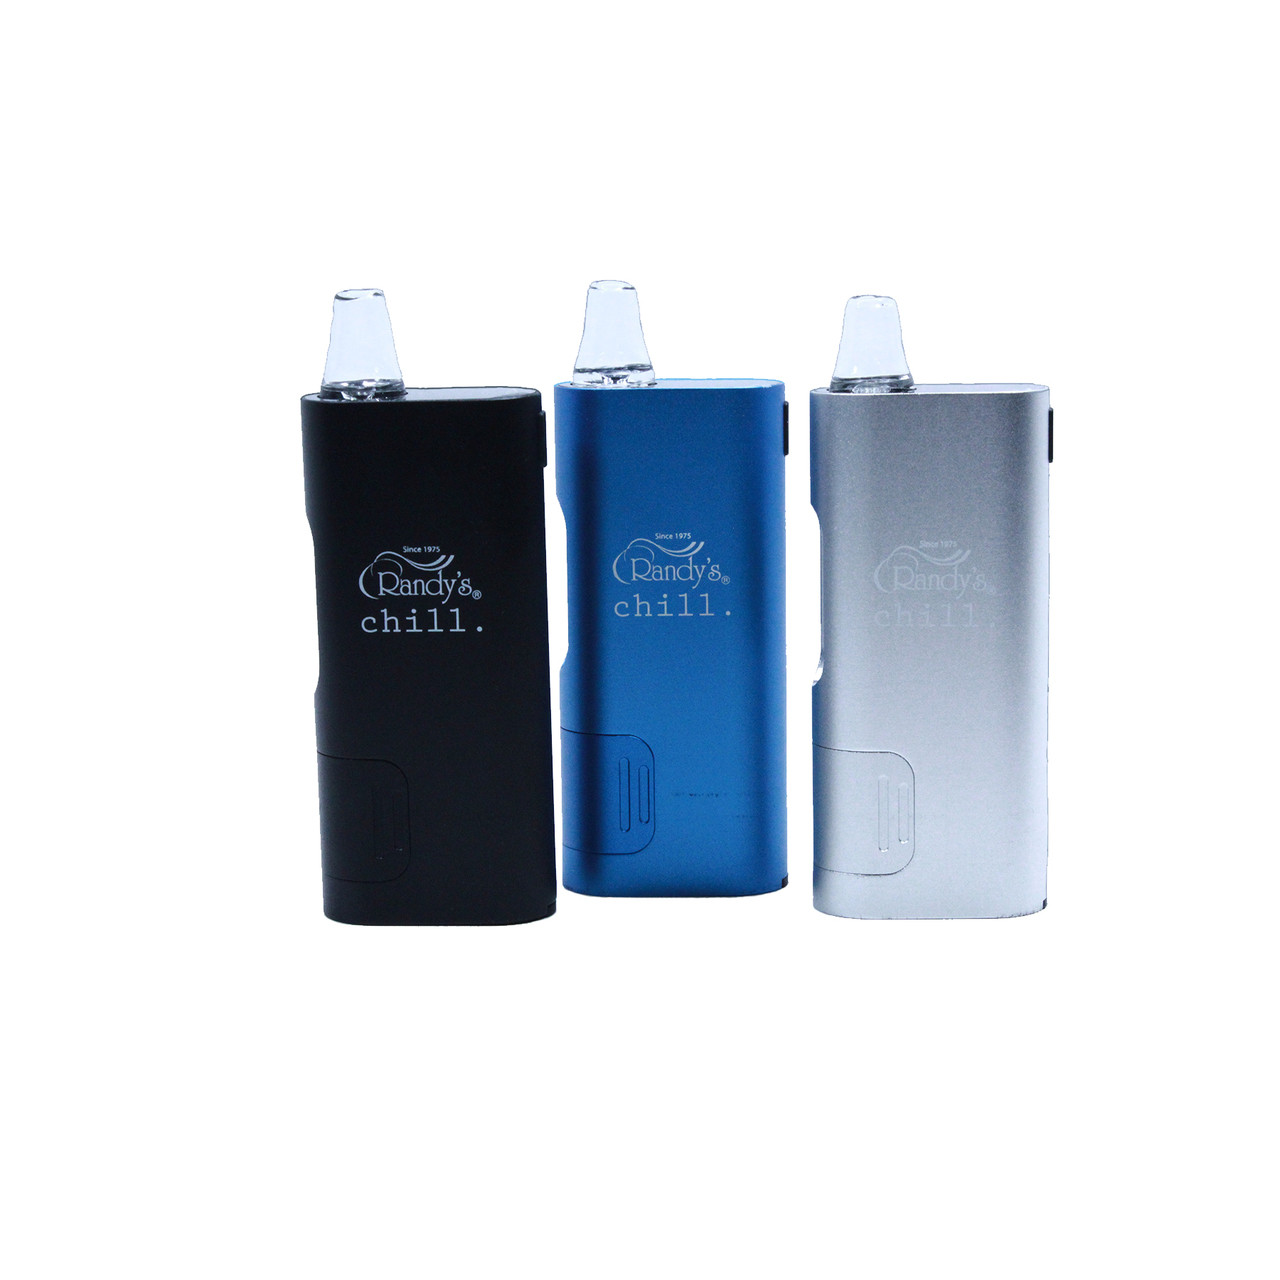 Randy's Chill Vaporizer Colors